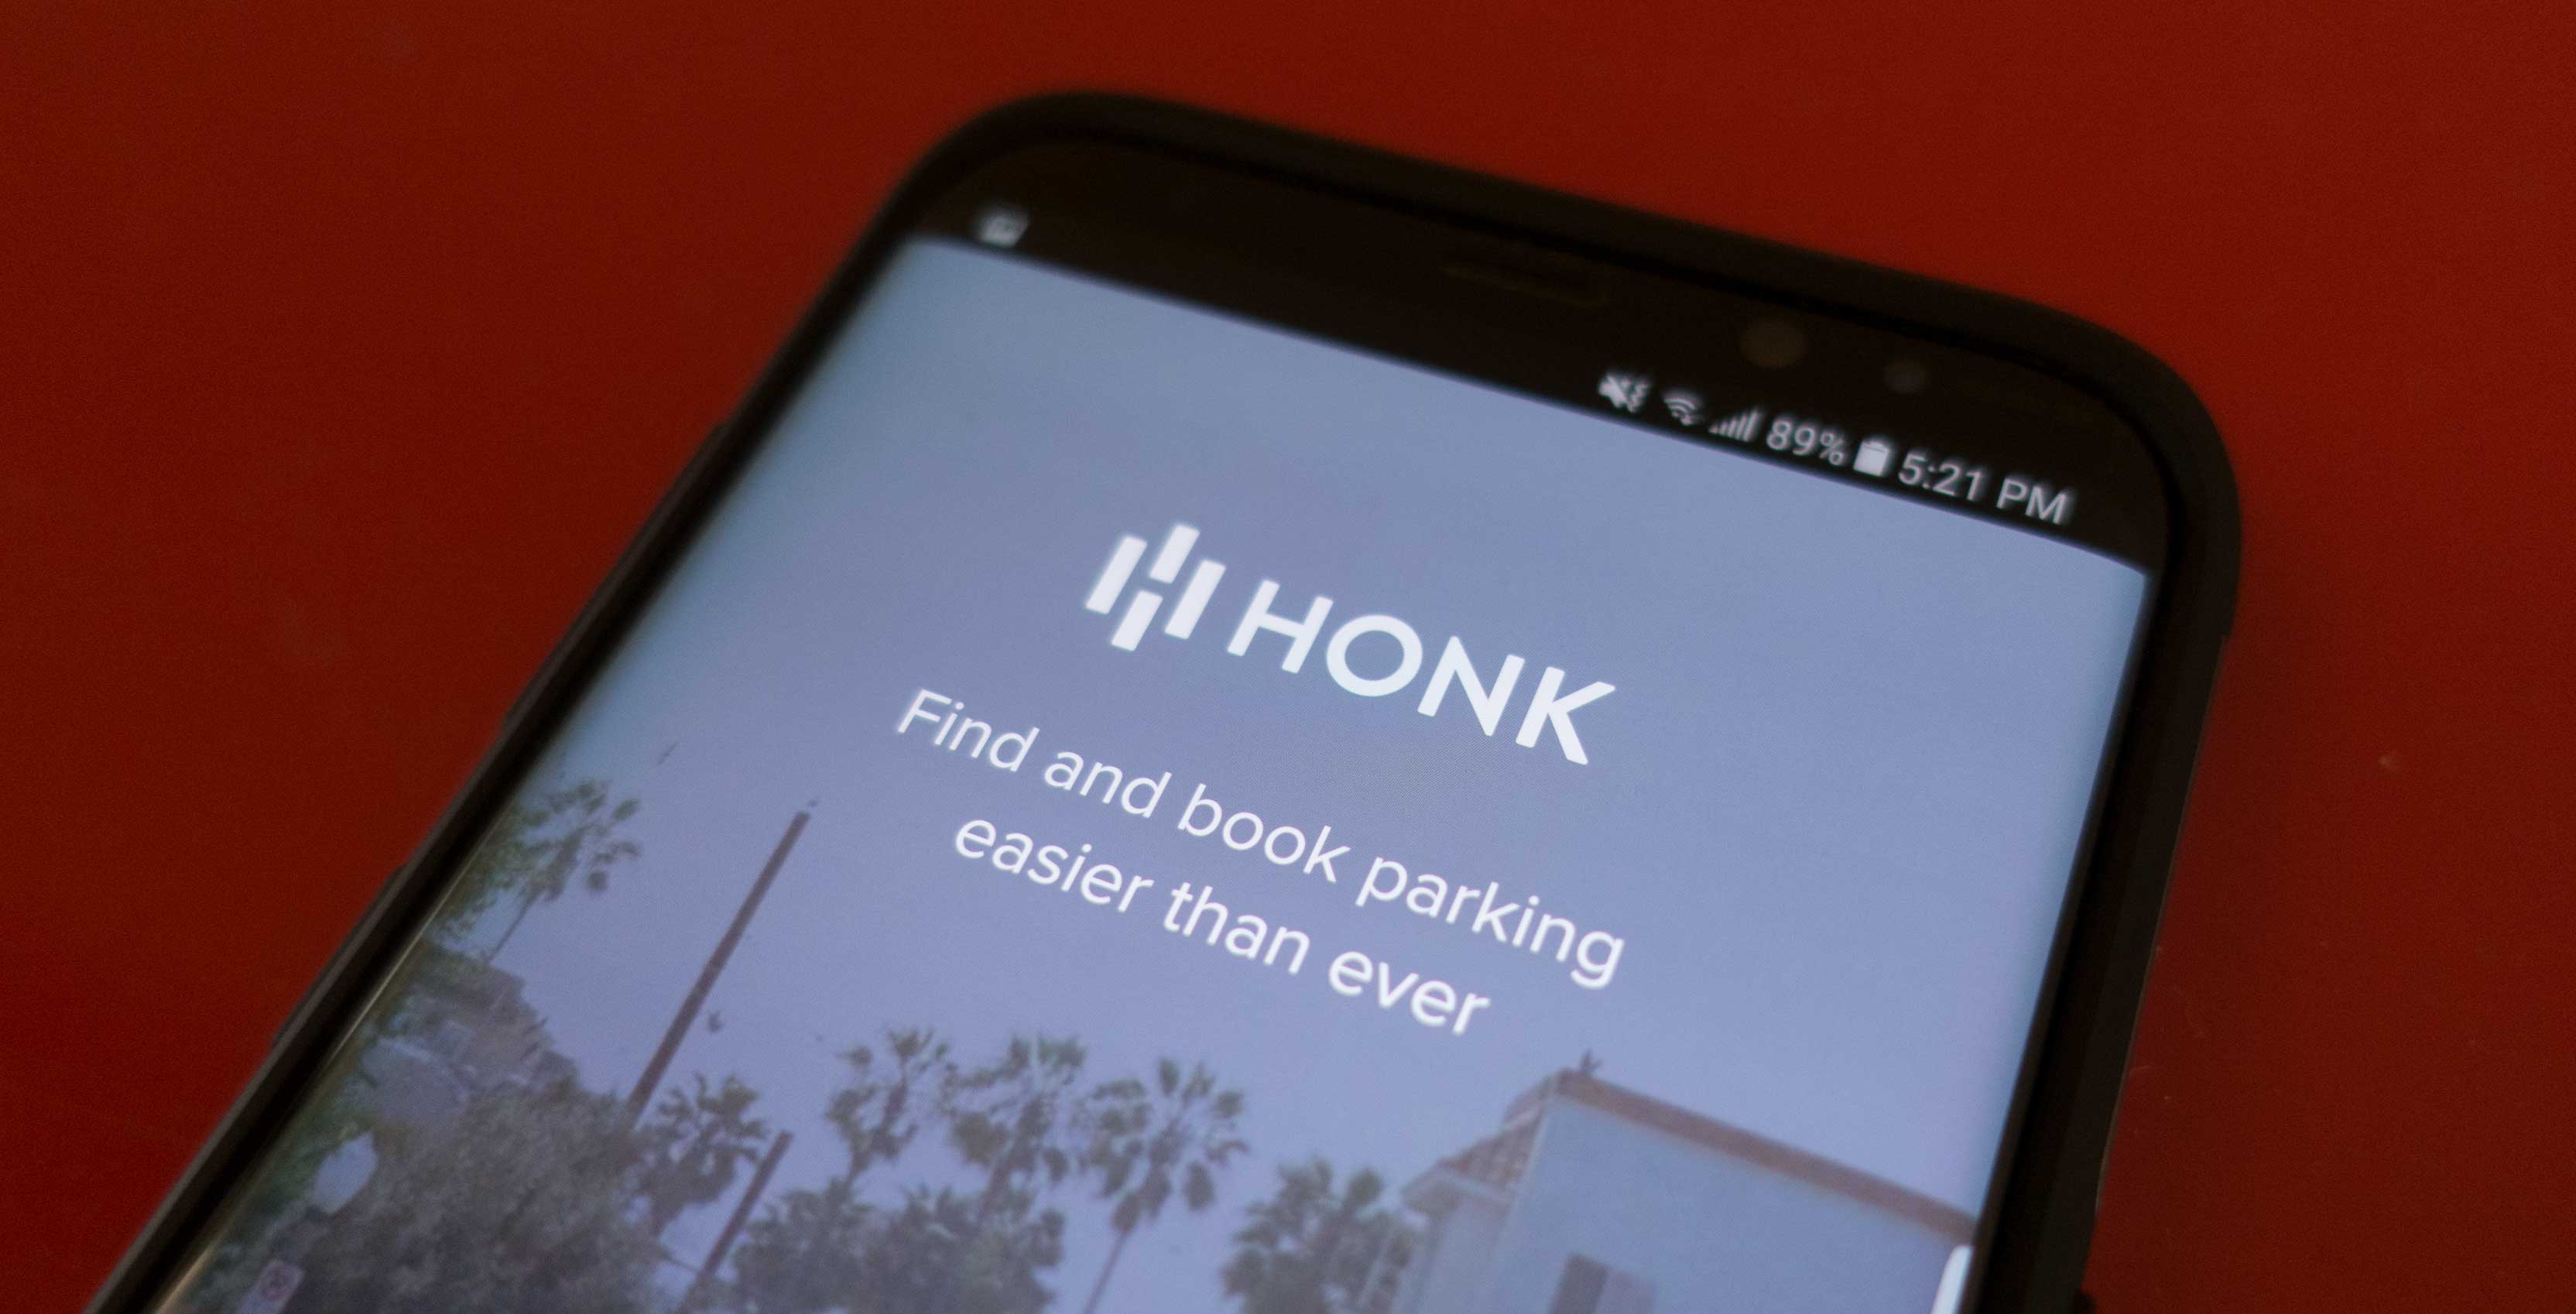 An image showing the HonkMobile main page